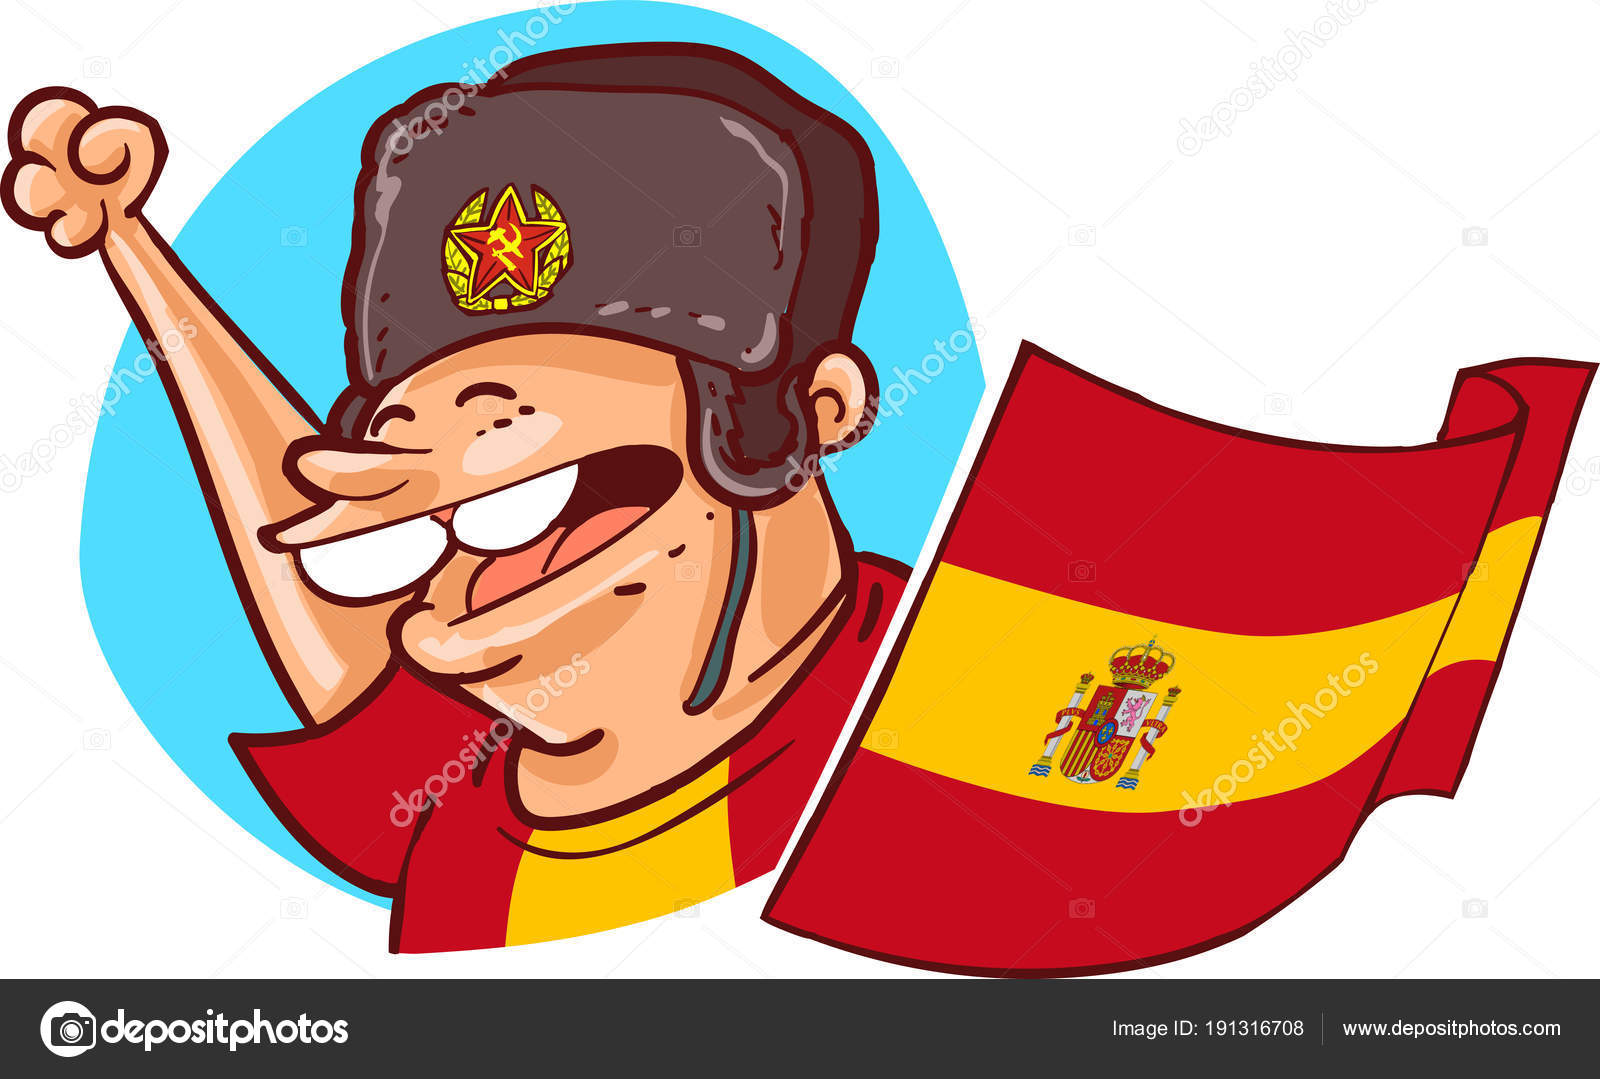 695eb24fc Spanish Supporter Ushanka Hat National Flag Russia 2018 World Cup ...